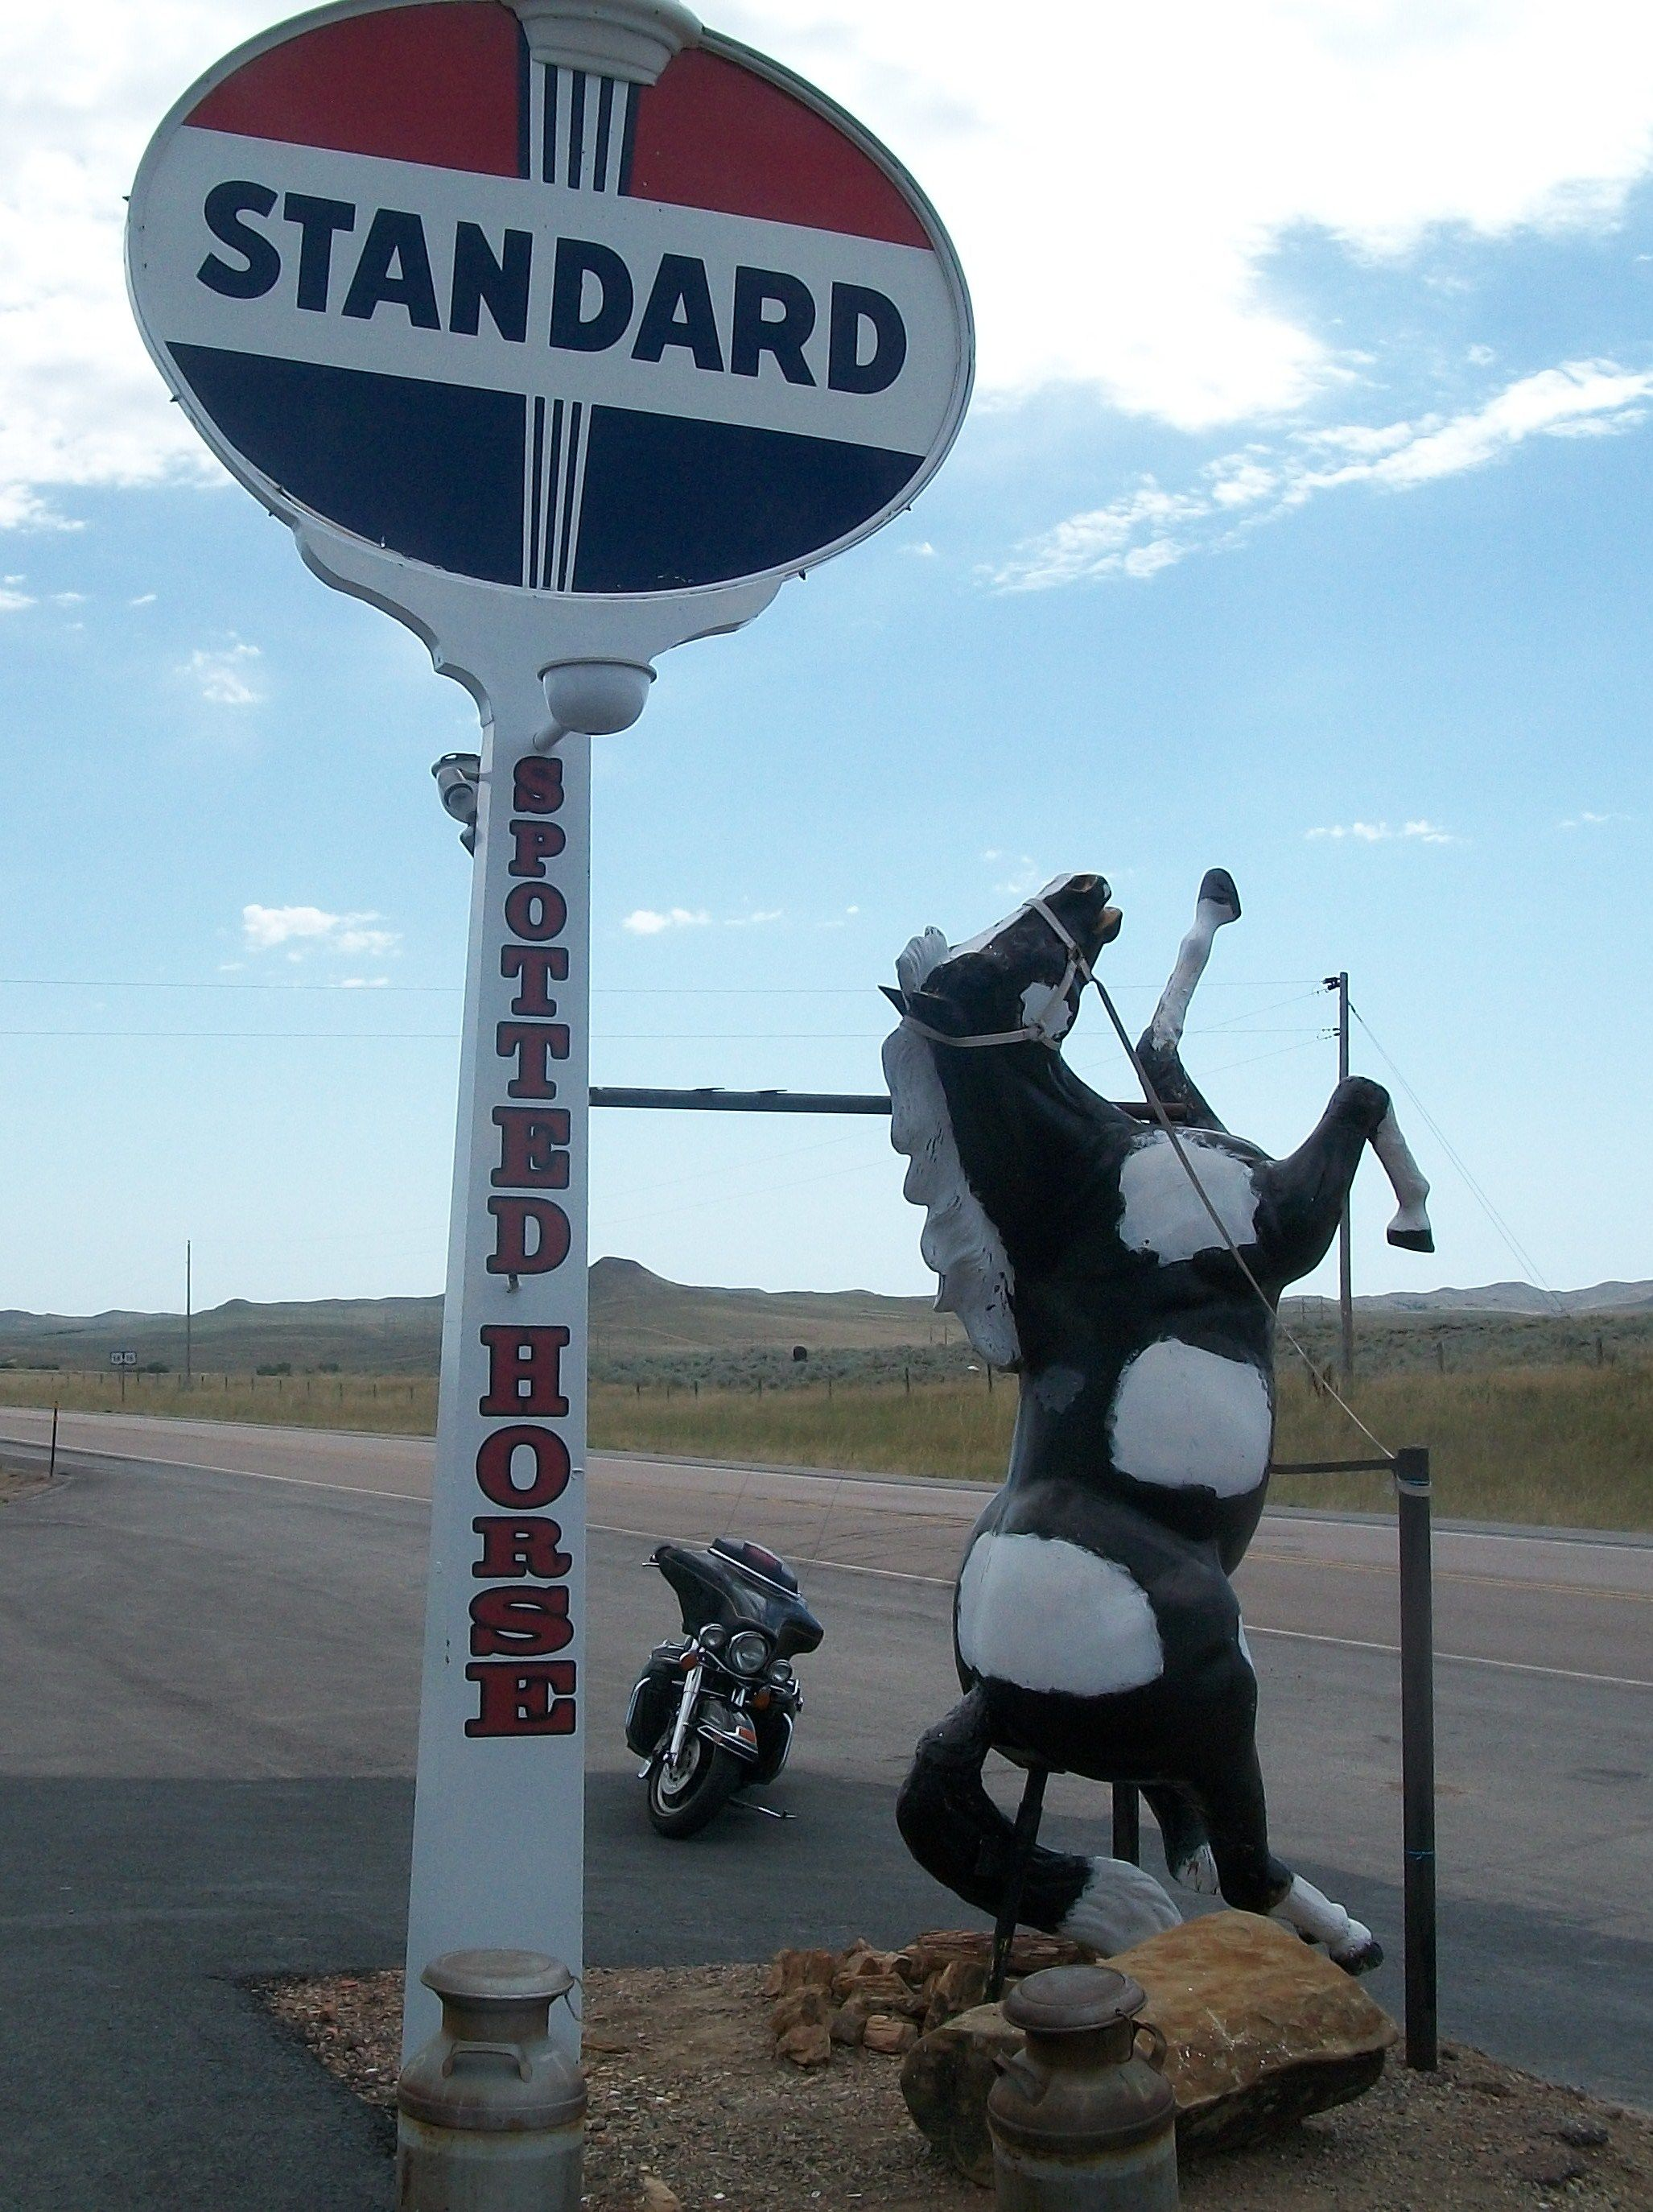 Spotted Horse Bar In Spotted Horse Wy With Population Of 2 Located On A Dusty Back Road Alternative To Interstate 90 Whe Outdoors Adventure Wyoming Back Road